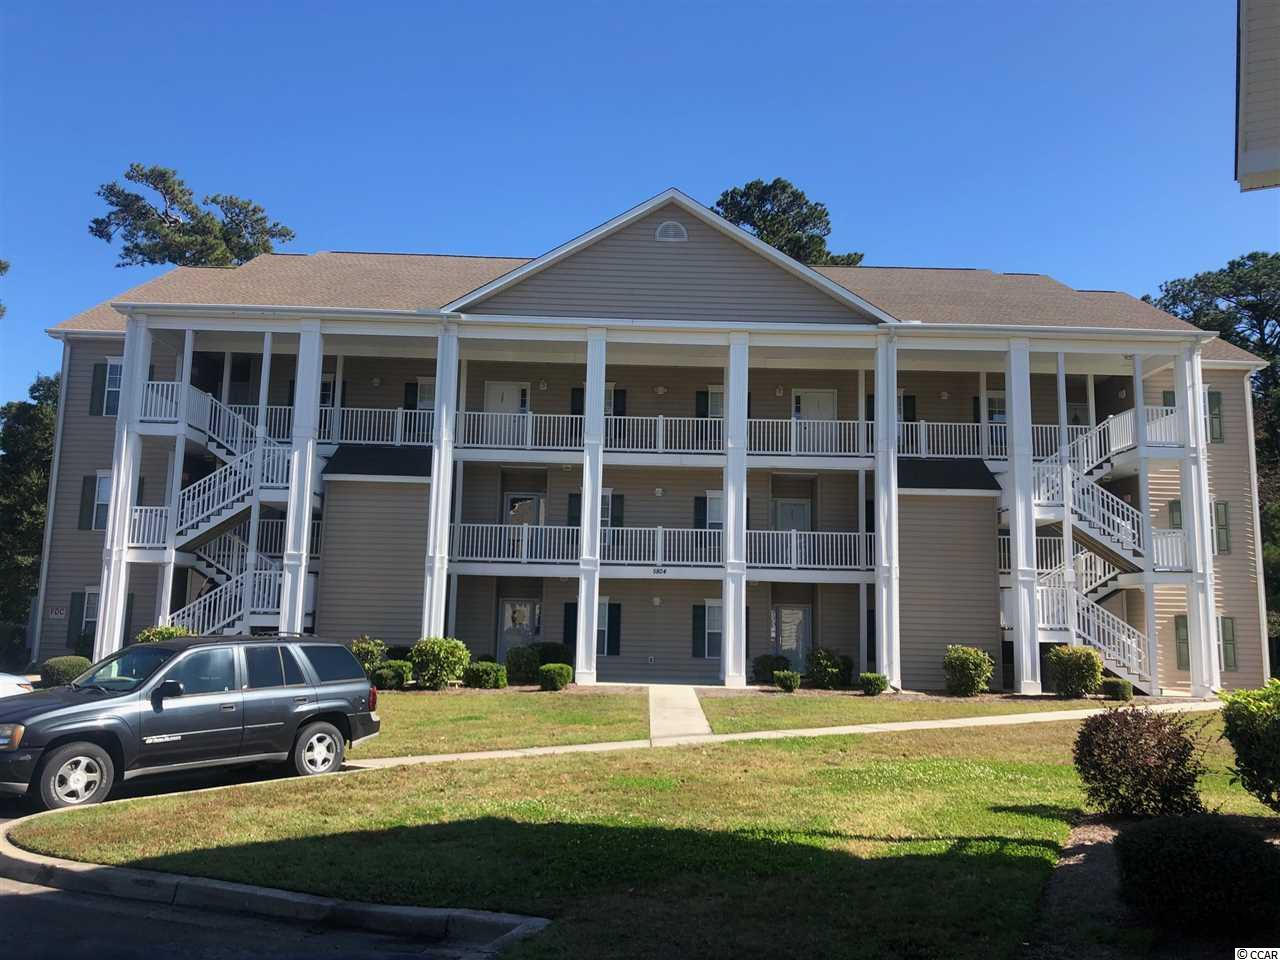 Nice 3Bd/2/Ba on the third floor, with cathedral ceiling and nice screened porch overlooking the golf course. This unit is being sold fully furnished. Excluding personal items. Downstairs is a owners closet. Community pool.